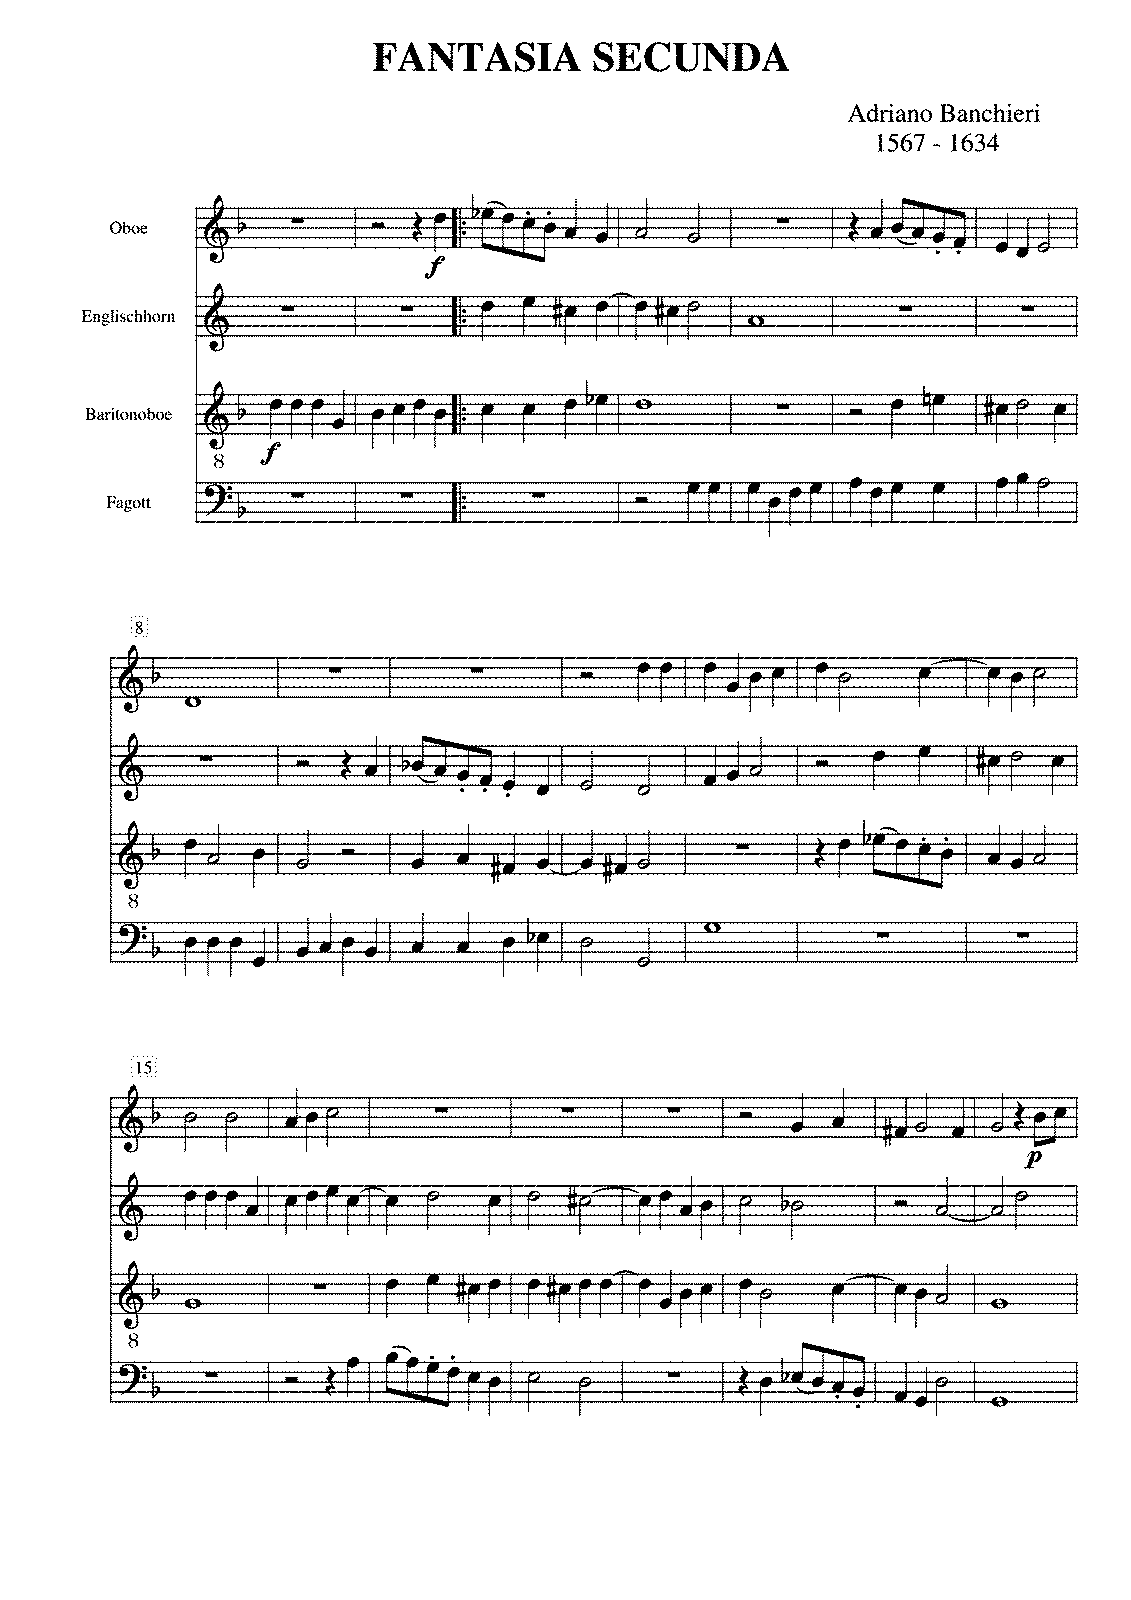 PMLP45083-Banchieri Fantasia2 Score Parts.pdf